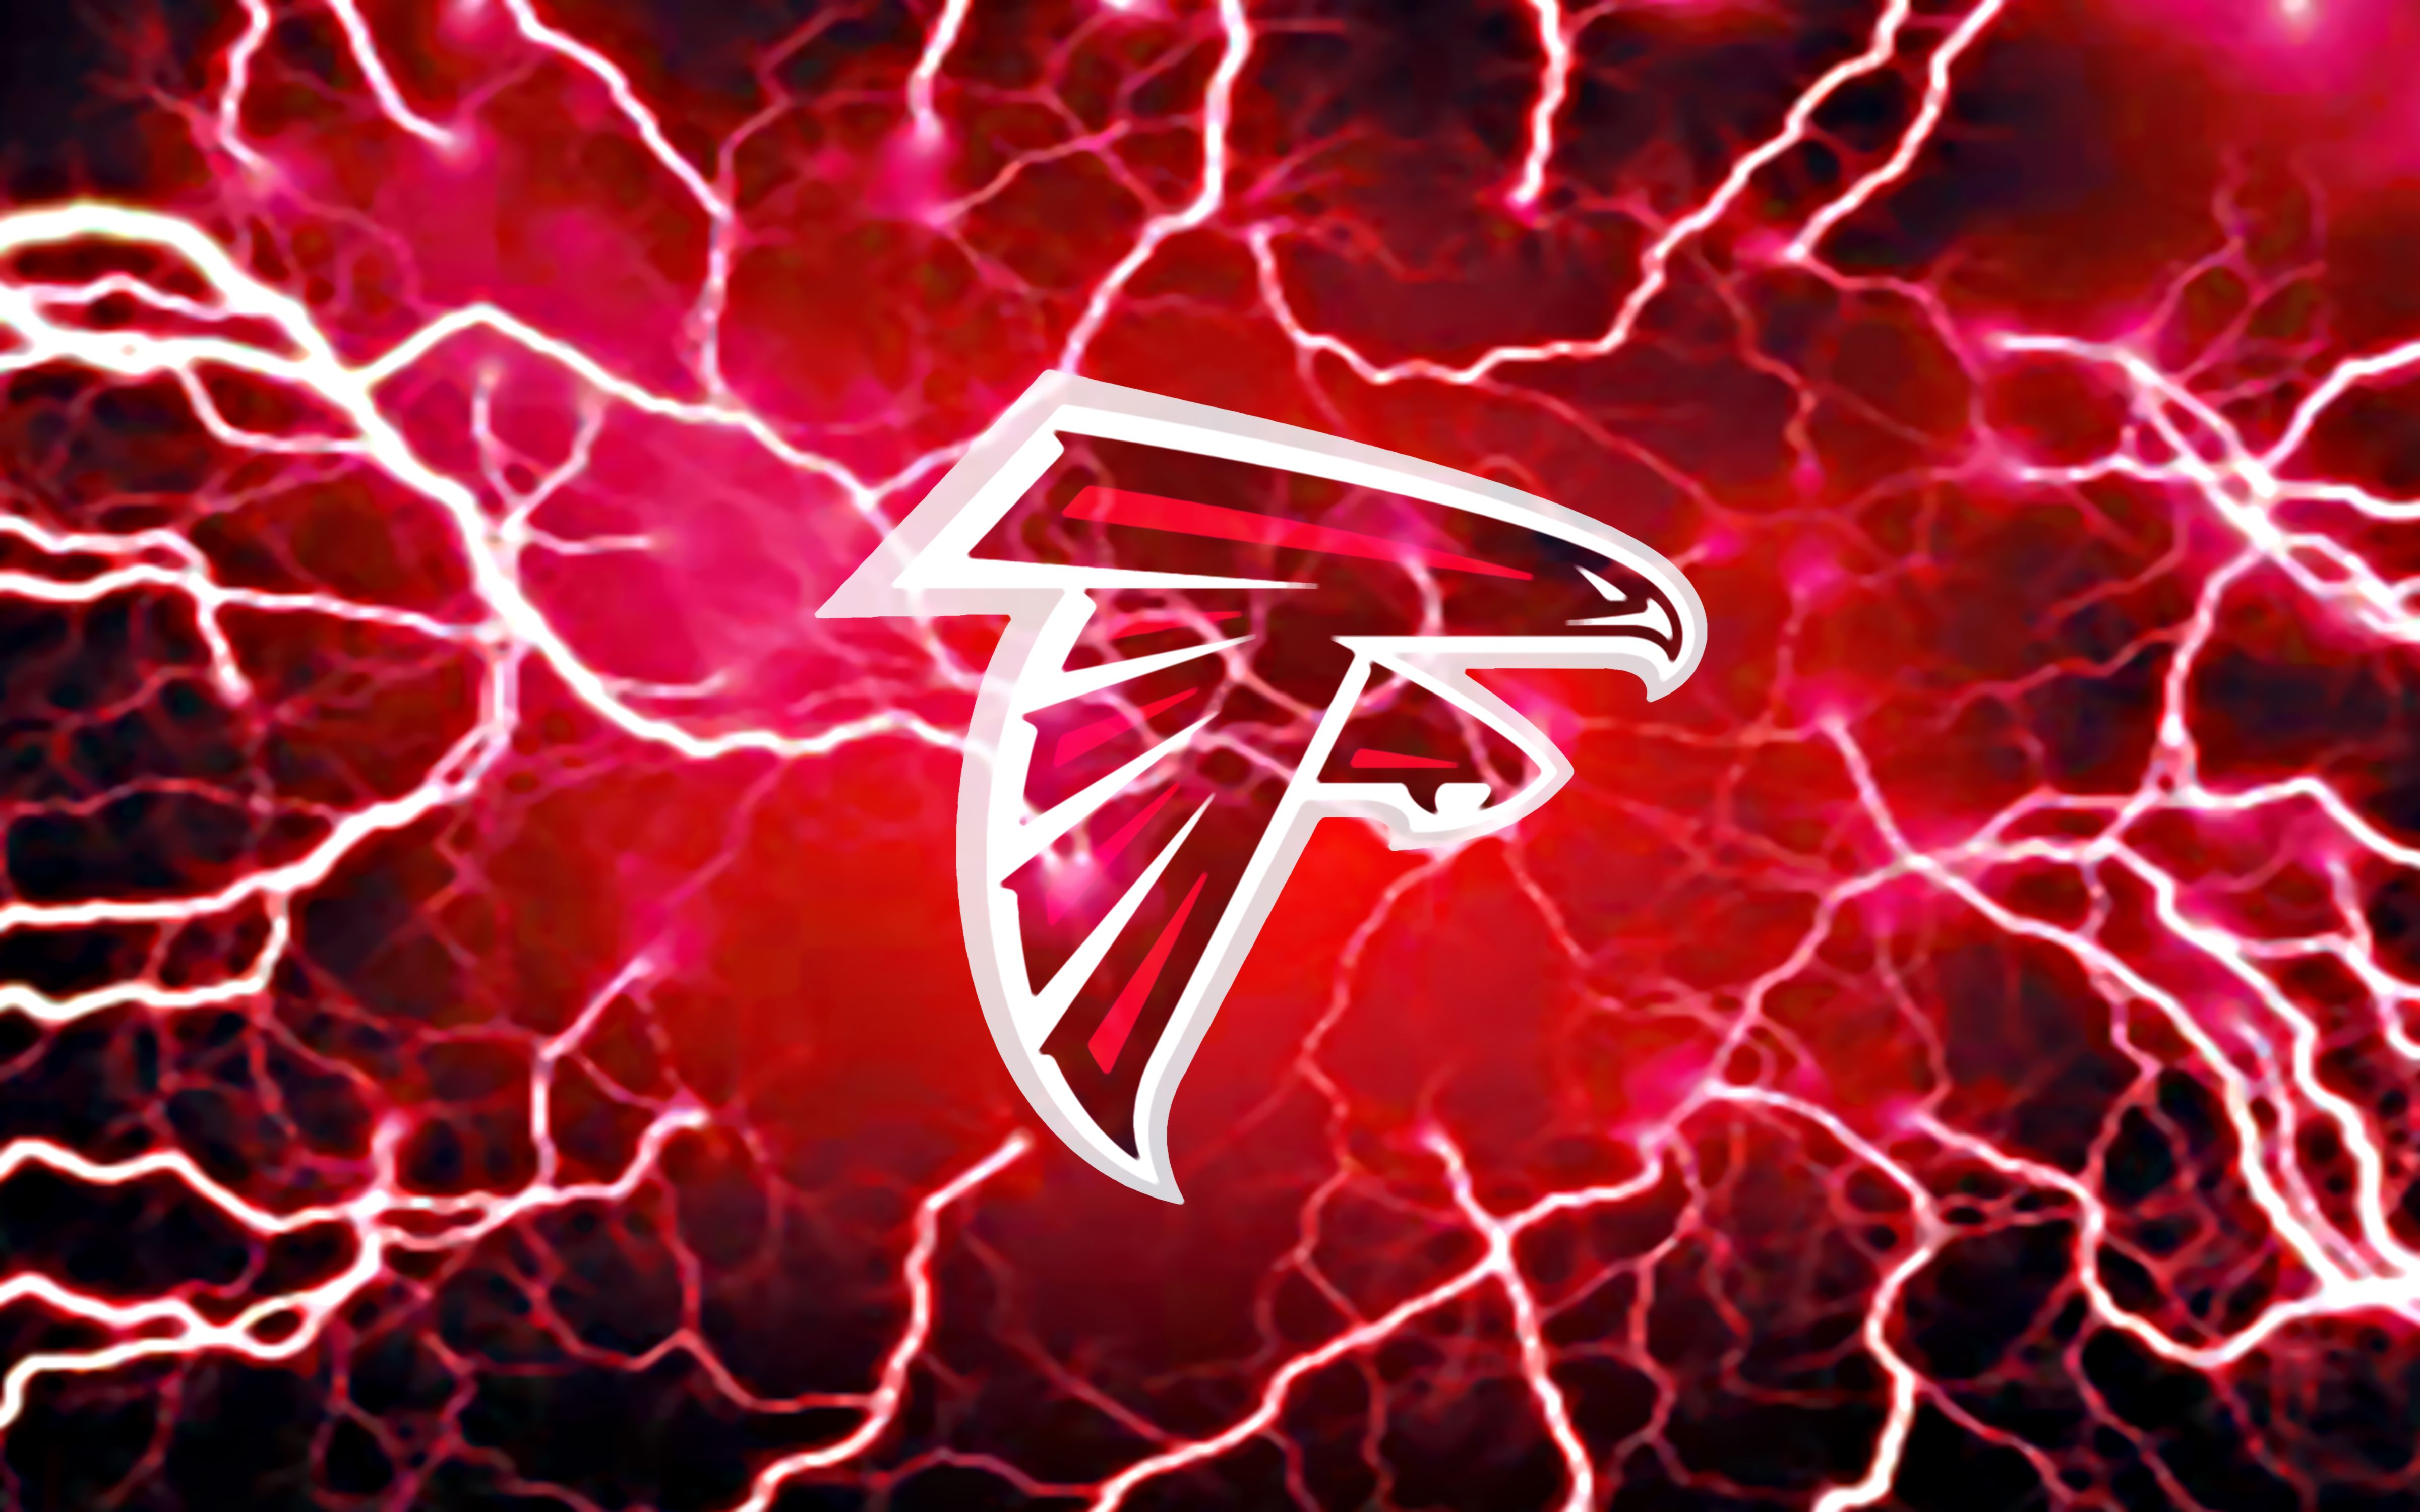 Pin By M Orr On My Favorite Things Atlanta Falcons Wallpaper Atlanta Falcons Atlanta Falcons Fans